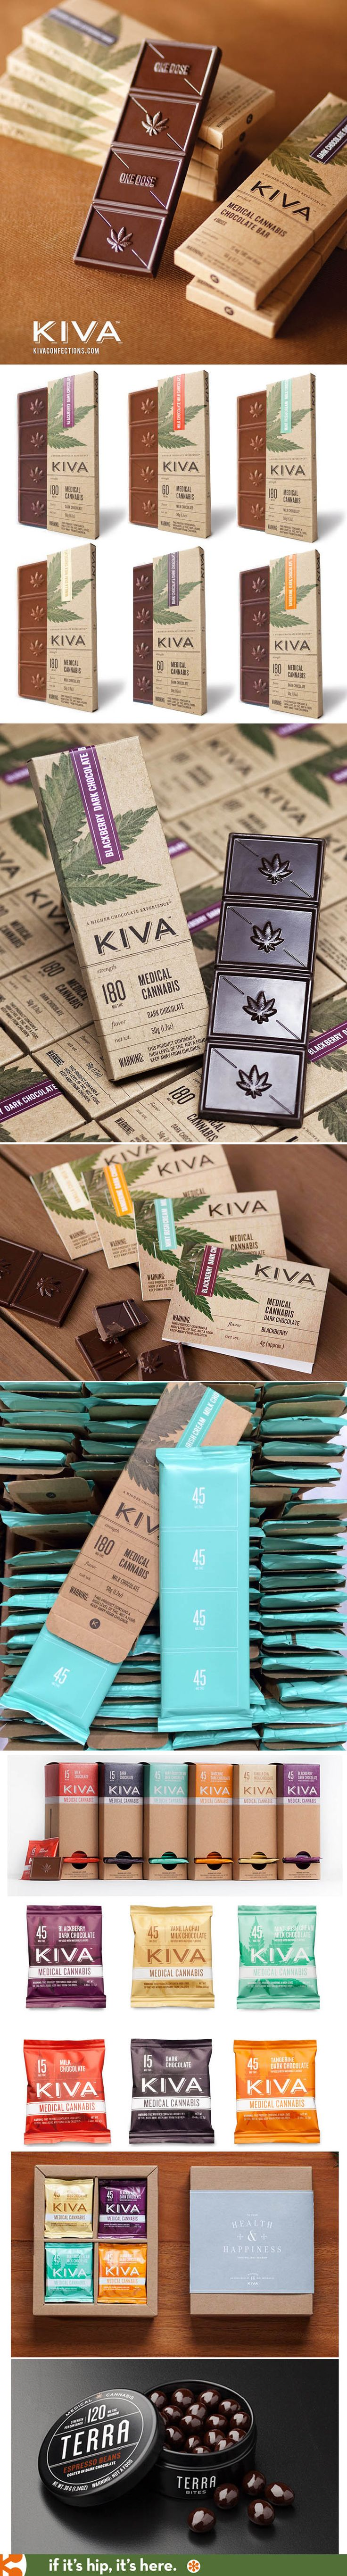 Kiva Confections, medical cannabis edibles, have beautiful packaging, displays and product design.